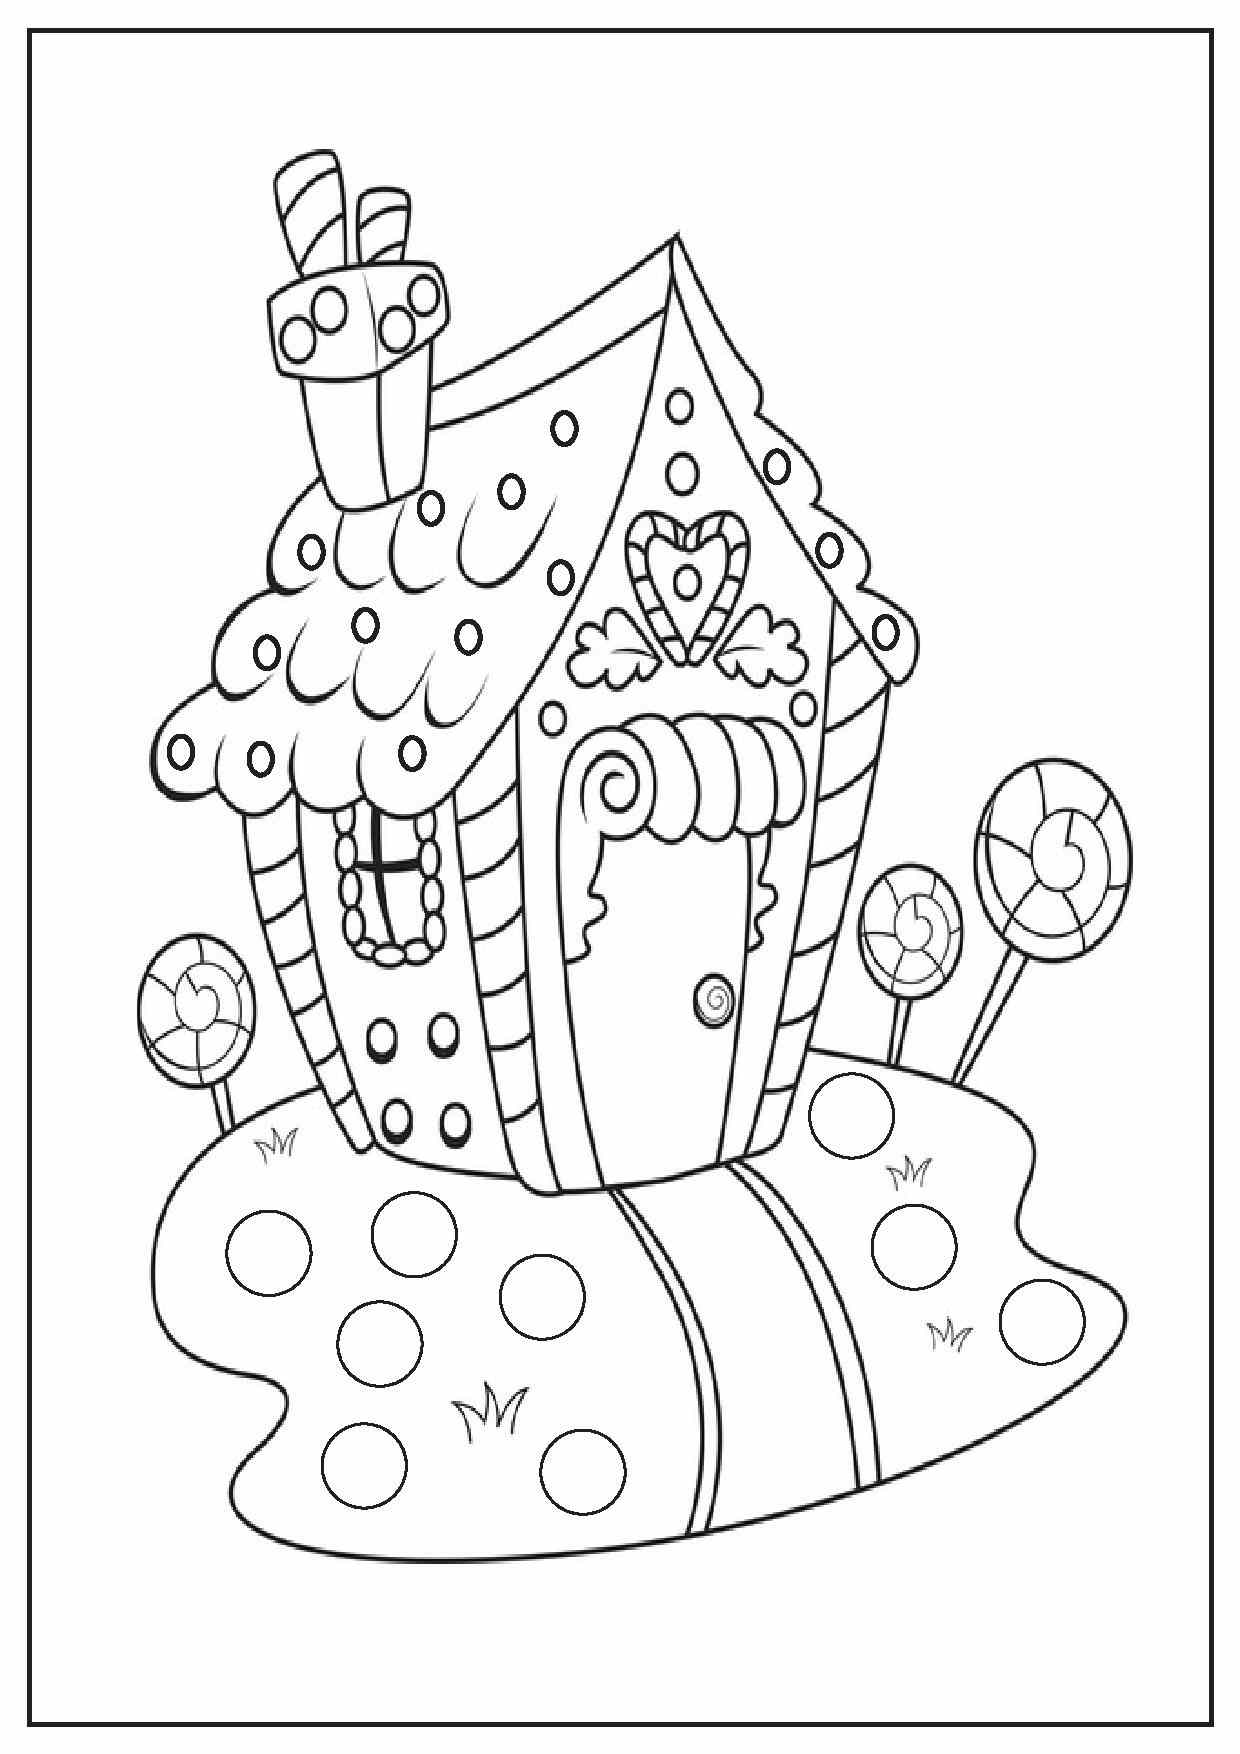 Christmas Printable Coloring Pages Com With